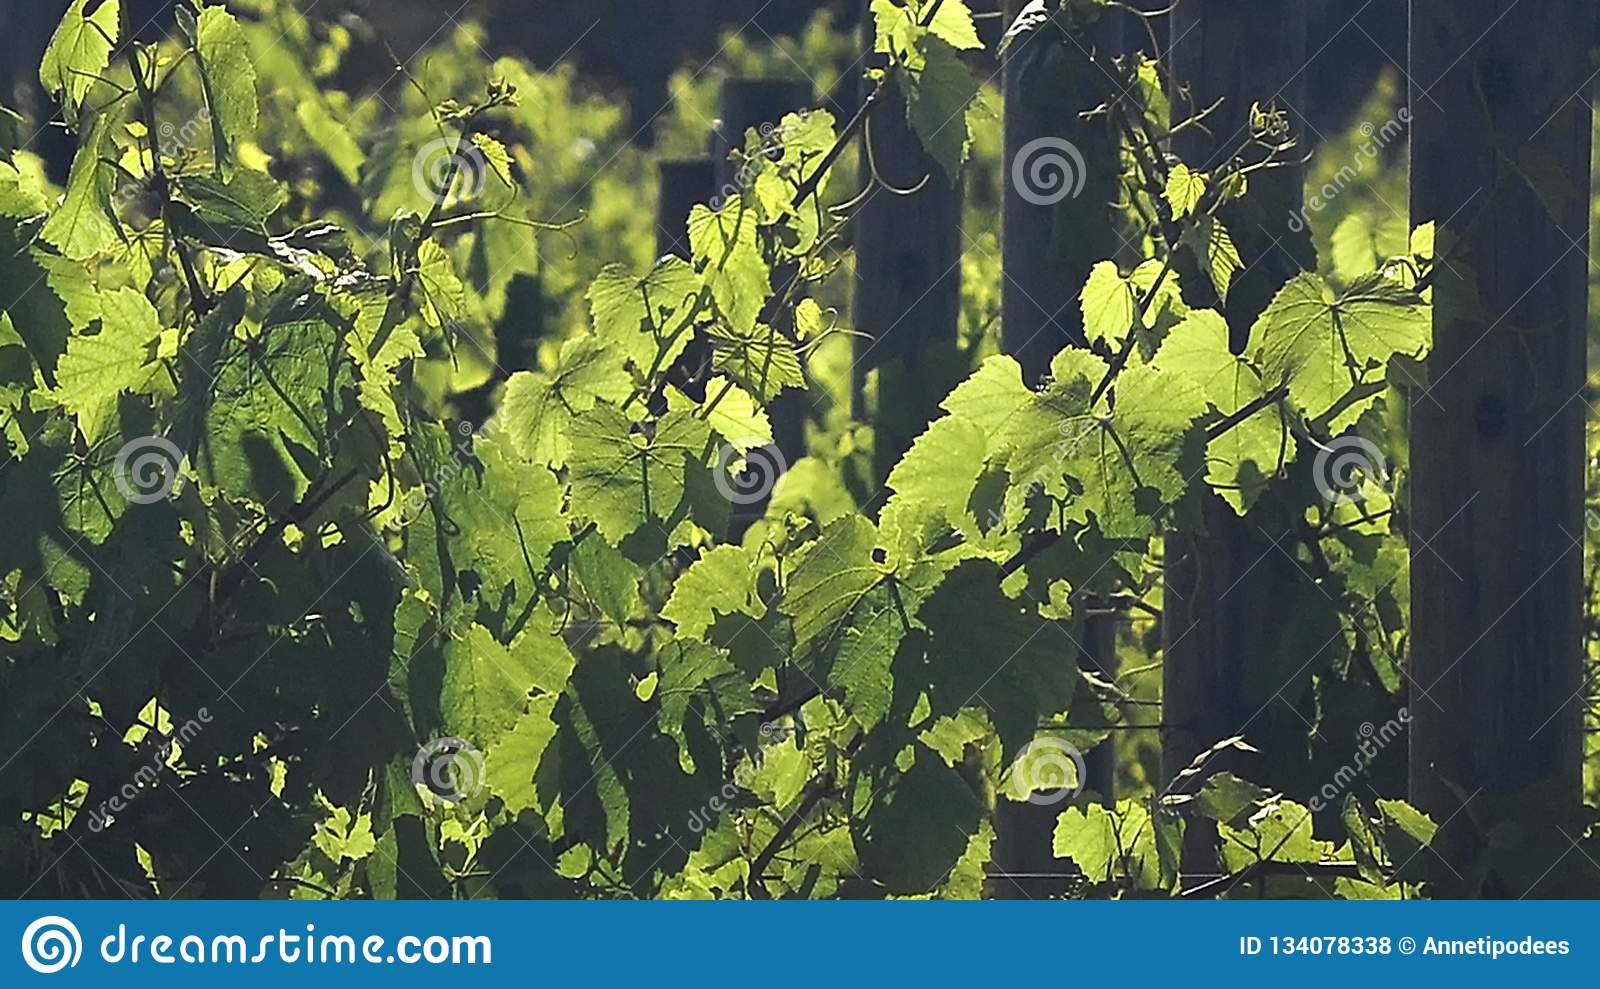 Deliberate variation of more formal photos of grape Vines.